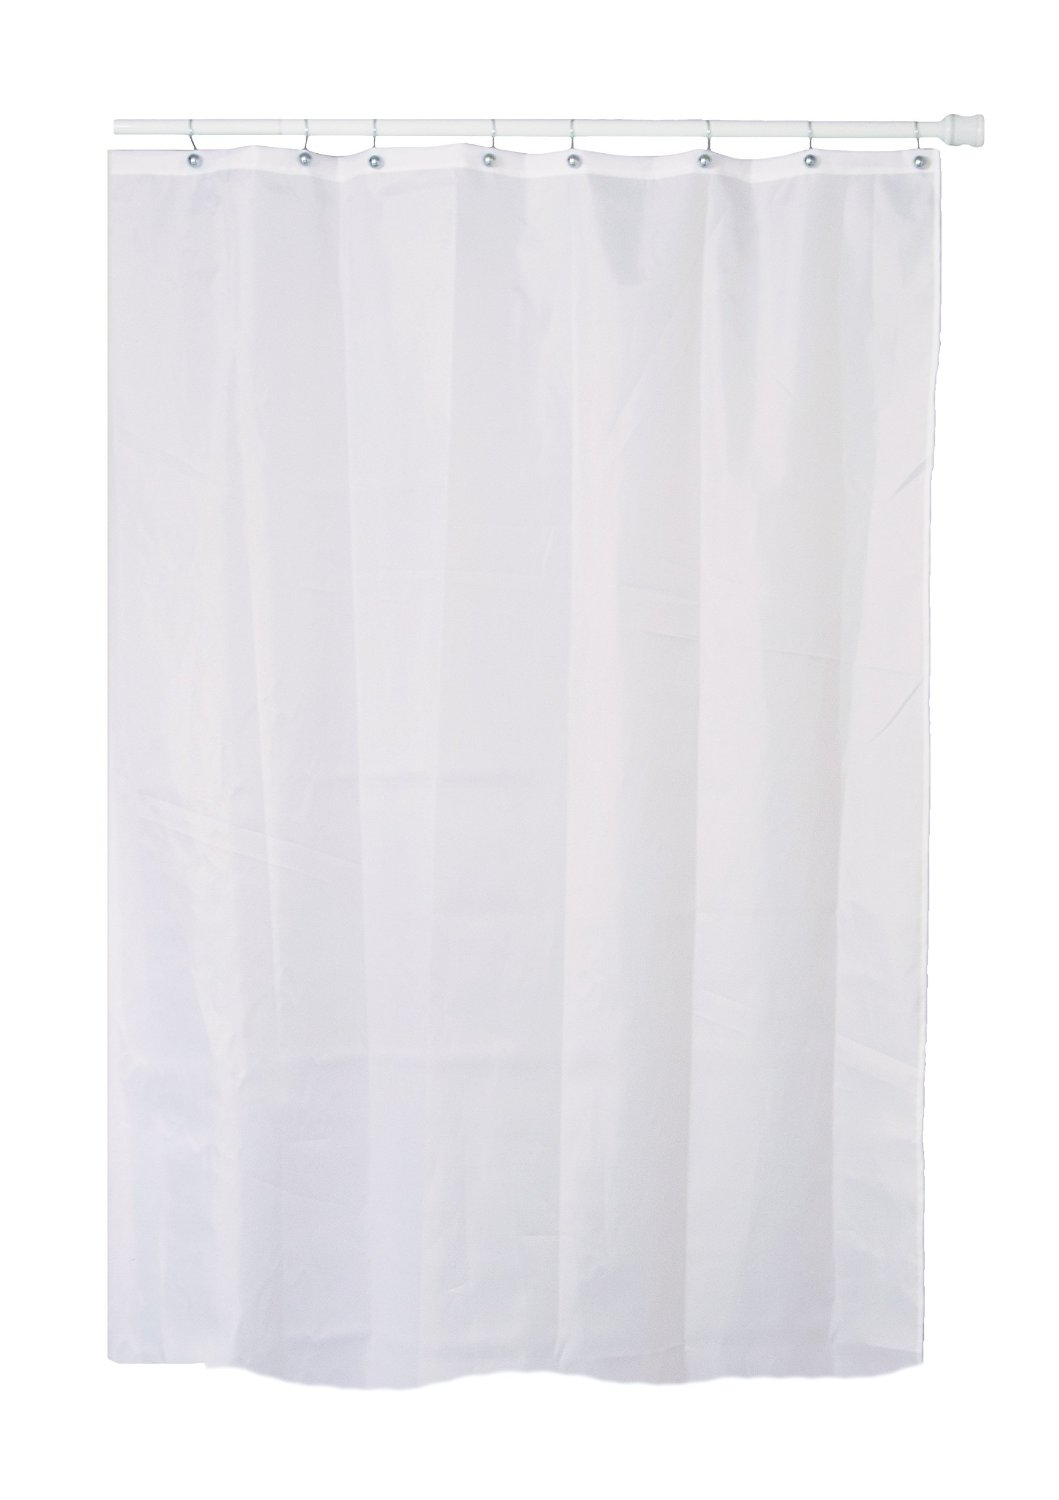 Extra Long / Tall White Fabric (Polyester / Nylon) Shower Curtain with Metal Grommets (Buckles), and a Weighted Hem to Reduce Billowing. Dimensions = 84 inches (7 ft) Tall x 72 inches (6 ft) Wide